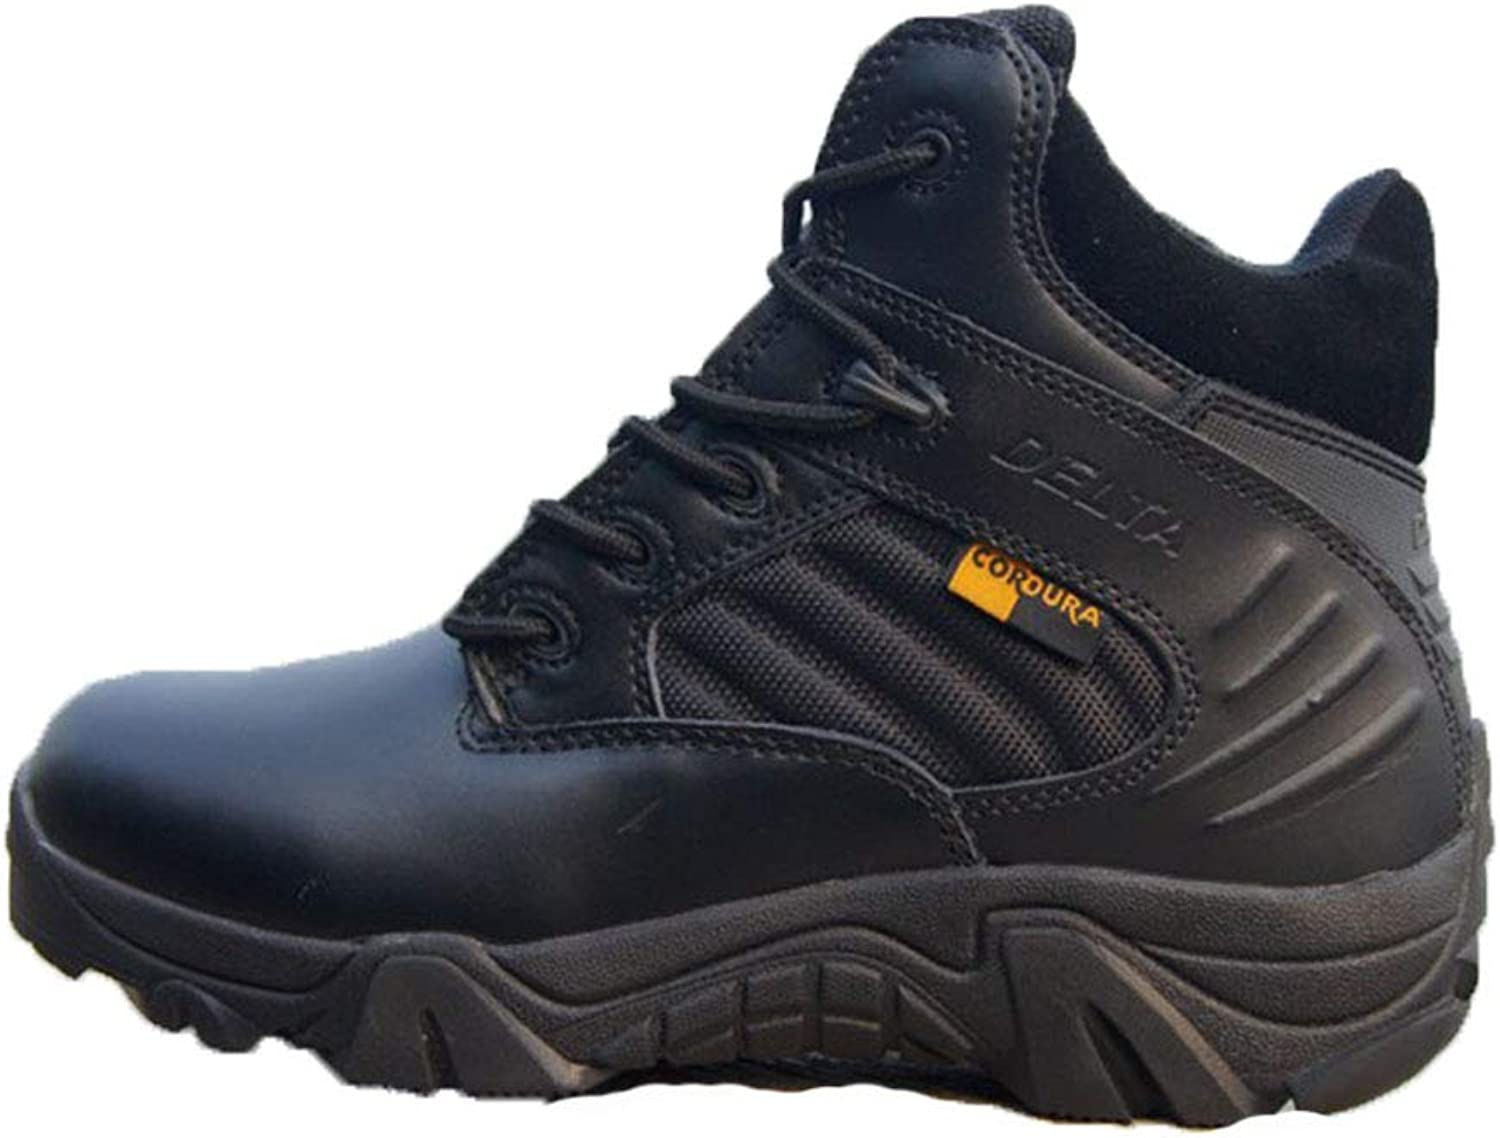 Bergort Men's Hiking Boots Desert Military Combat shoes Tactical Camping Sports shoes